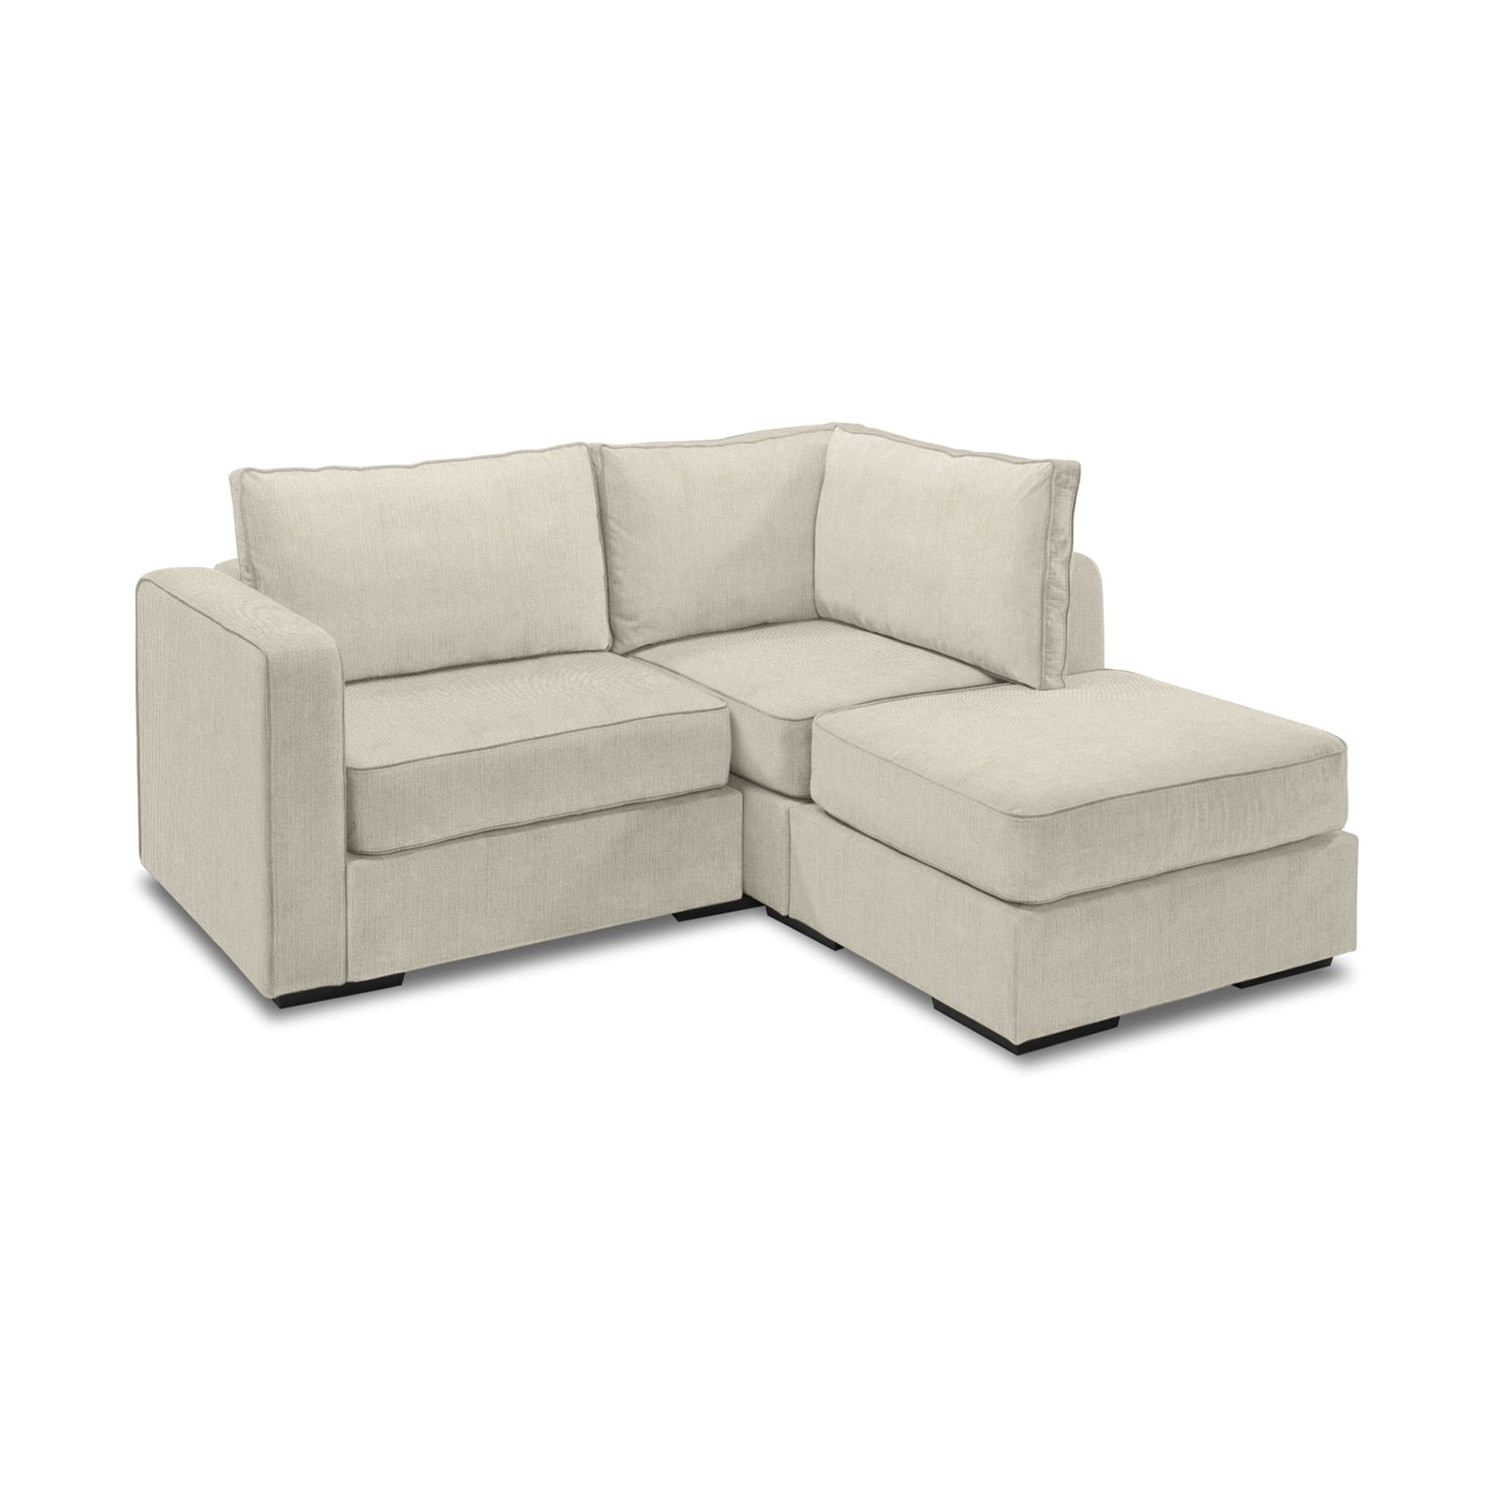 5 Series Sactionals Small Sectional Taupe Lovesac